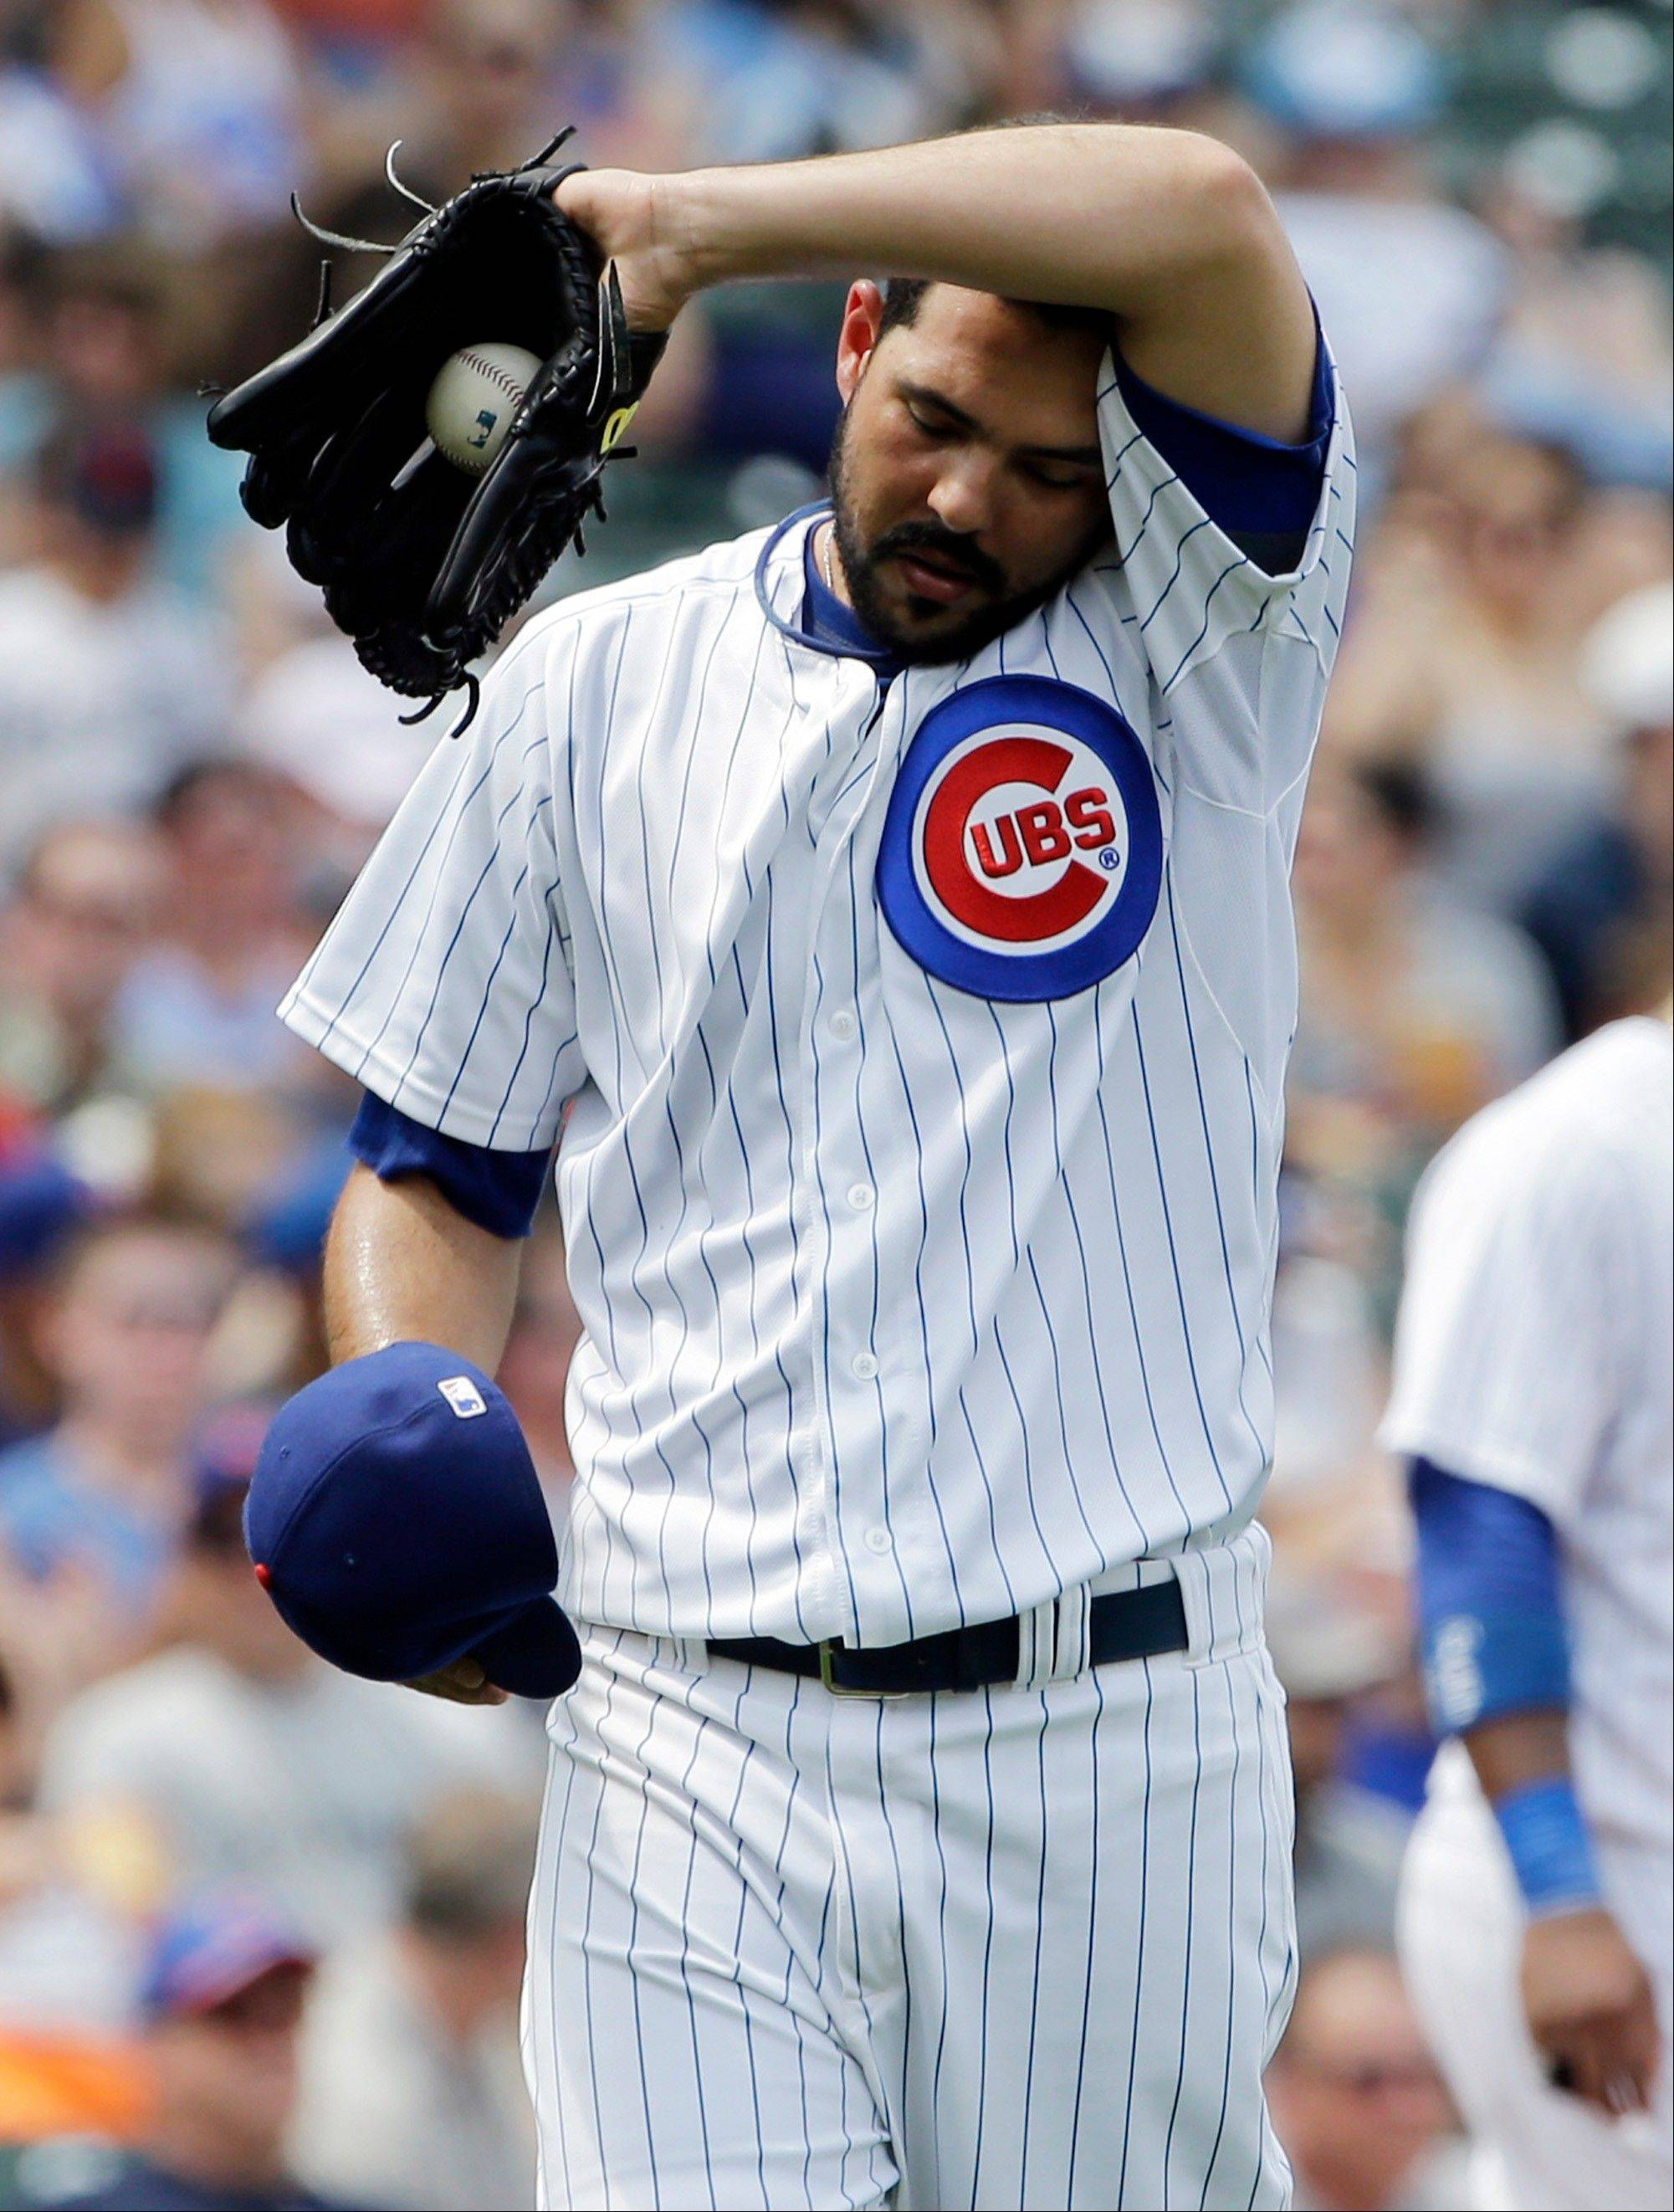 Cubs starter Carlos Villanueva reacts after the Pirates' Andrew McCutchen hit an RBI double during the fourth inning Sunday.